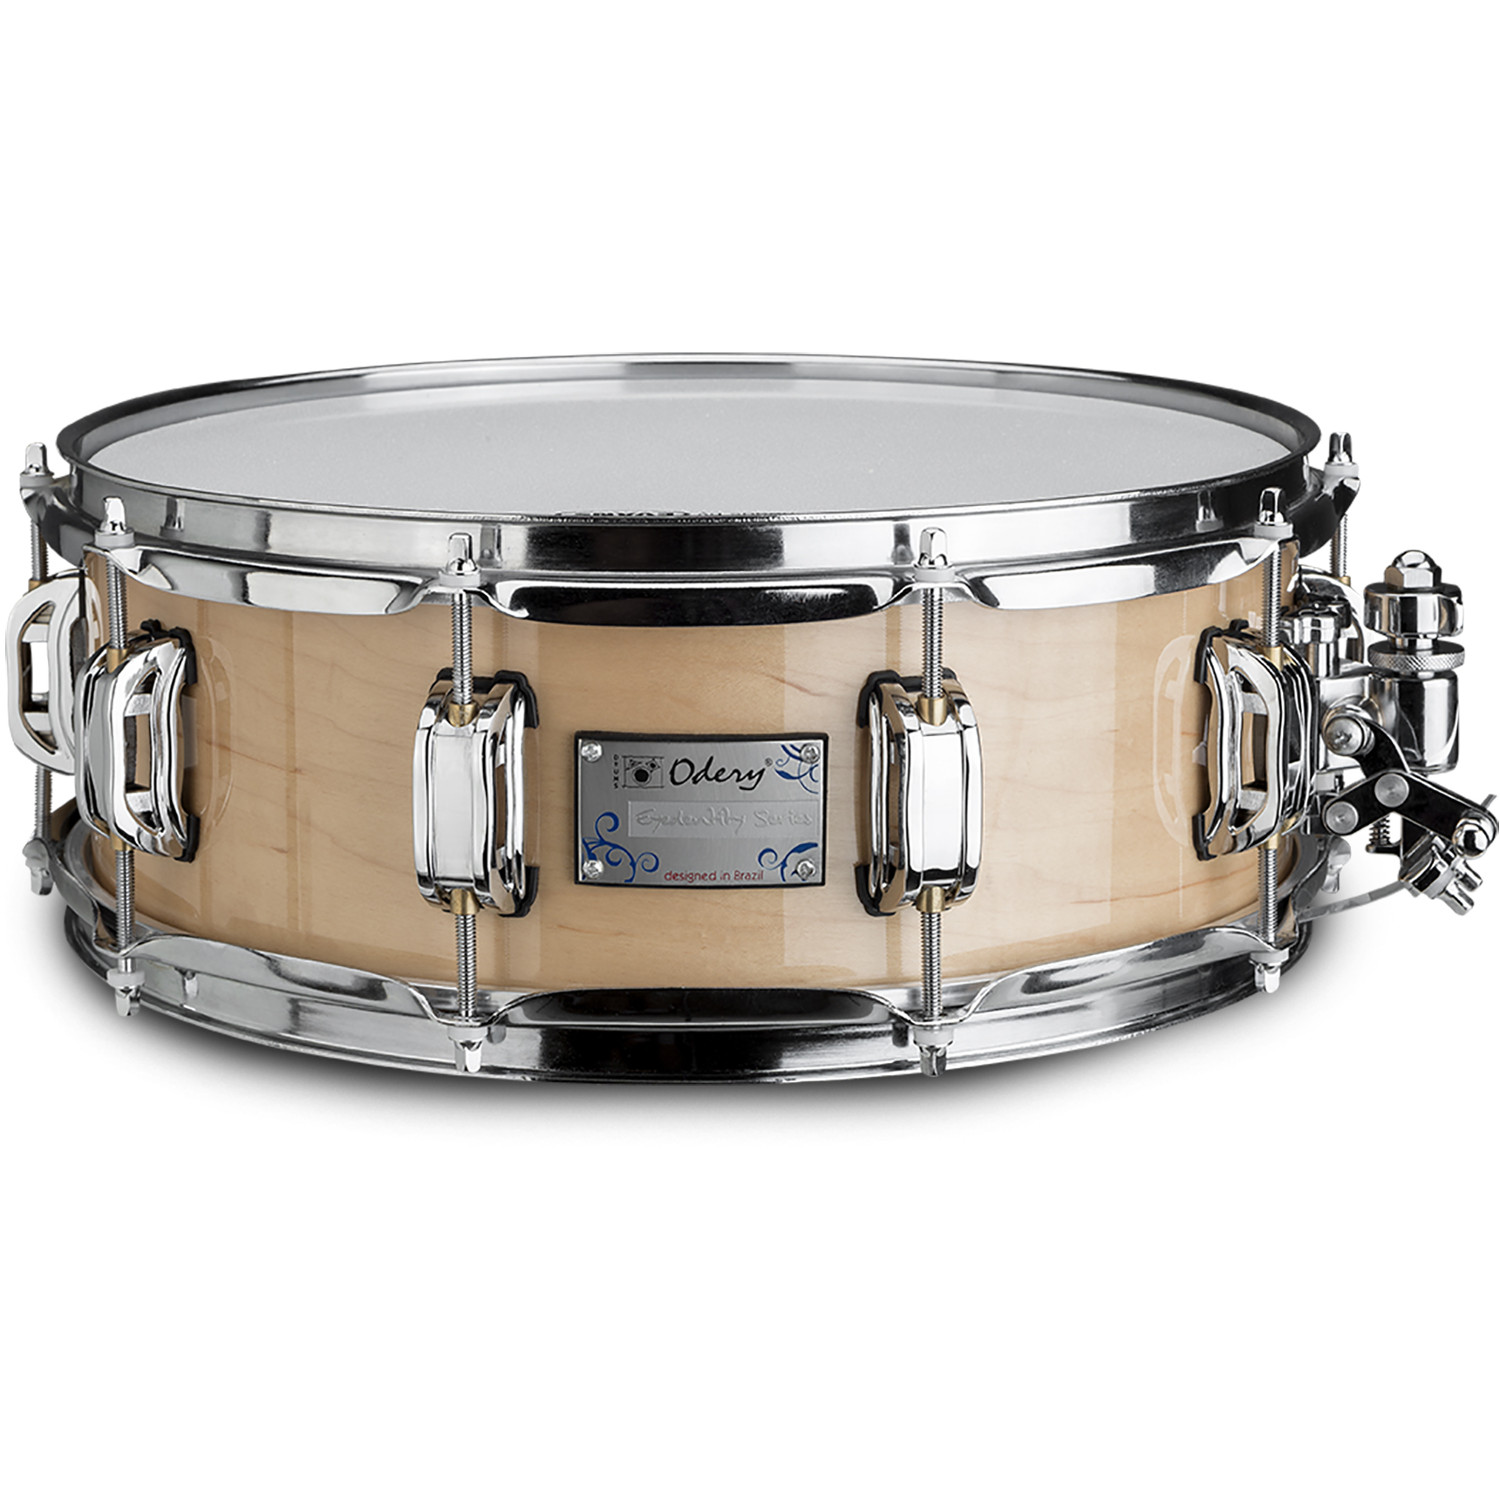 Odery Eyedentity 10 x 4.5 inch maple snare drum, natural